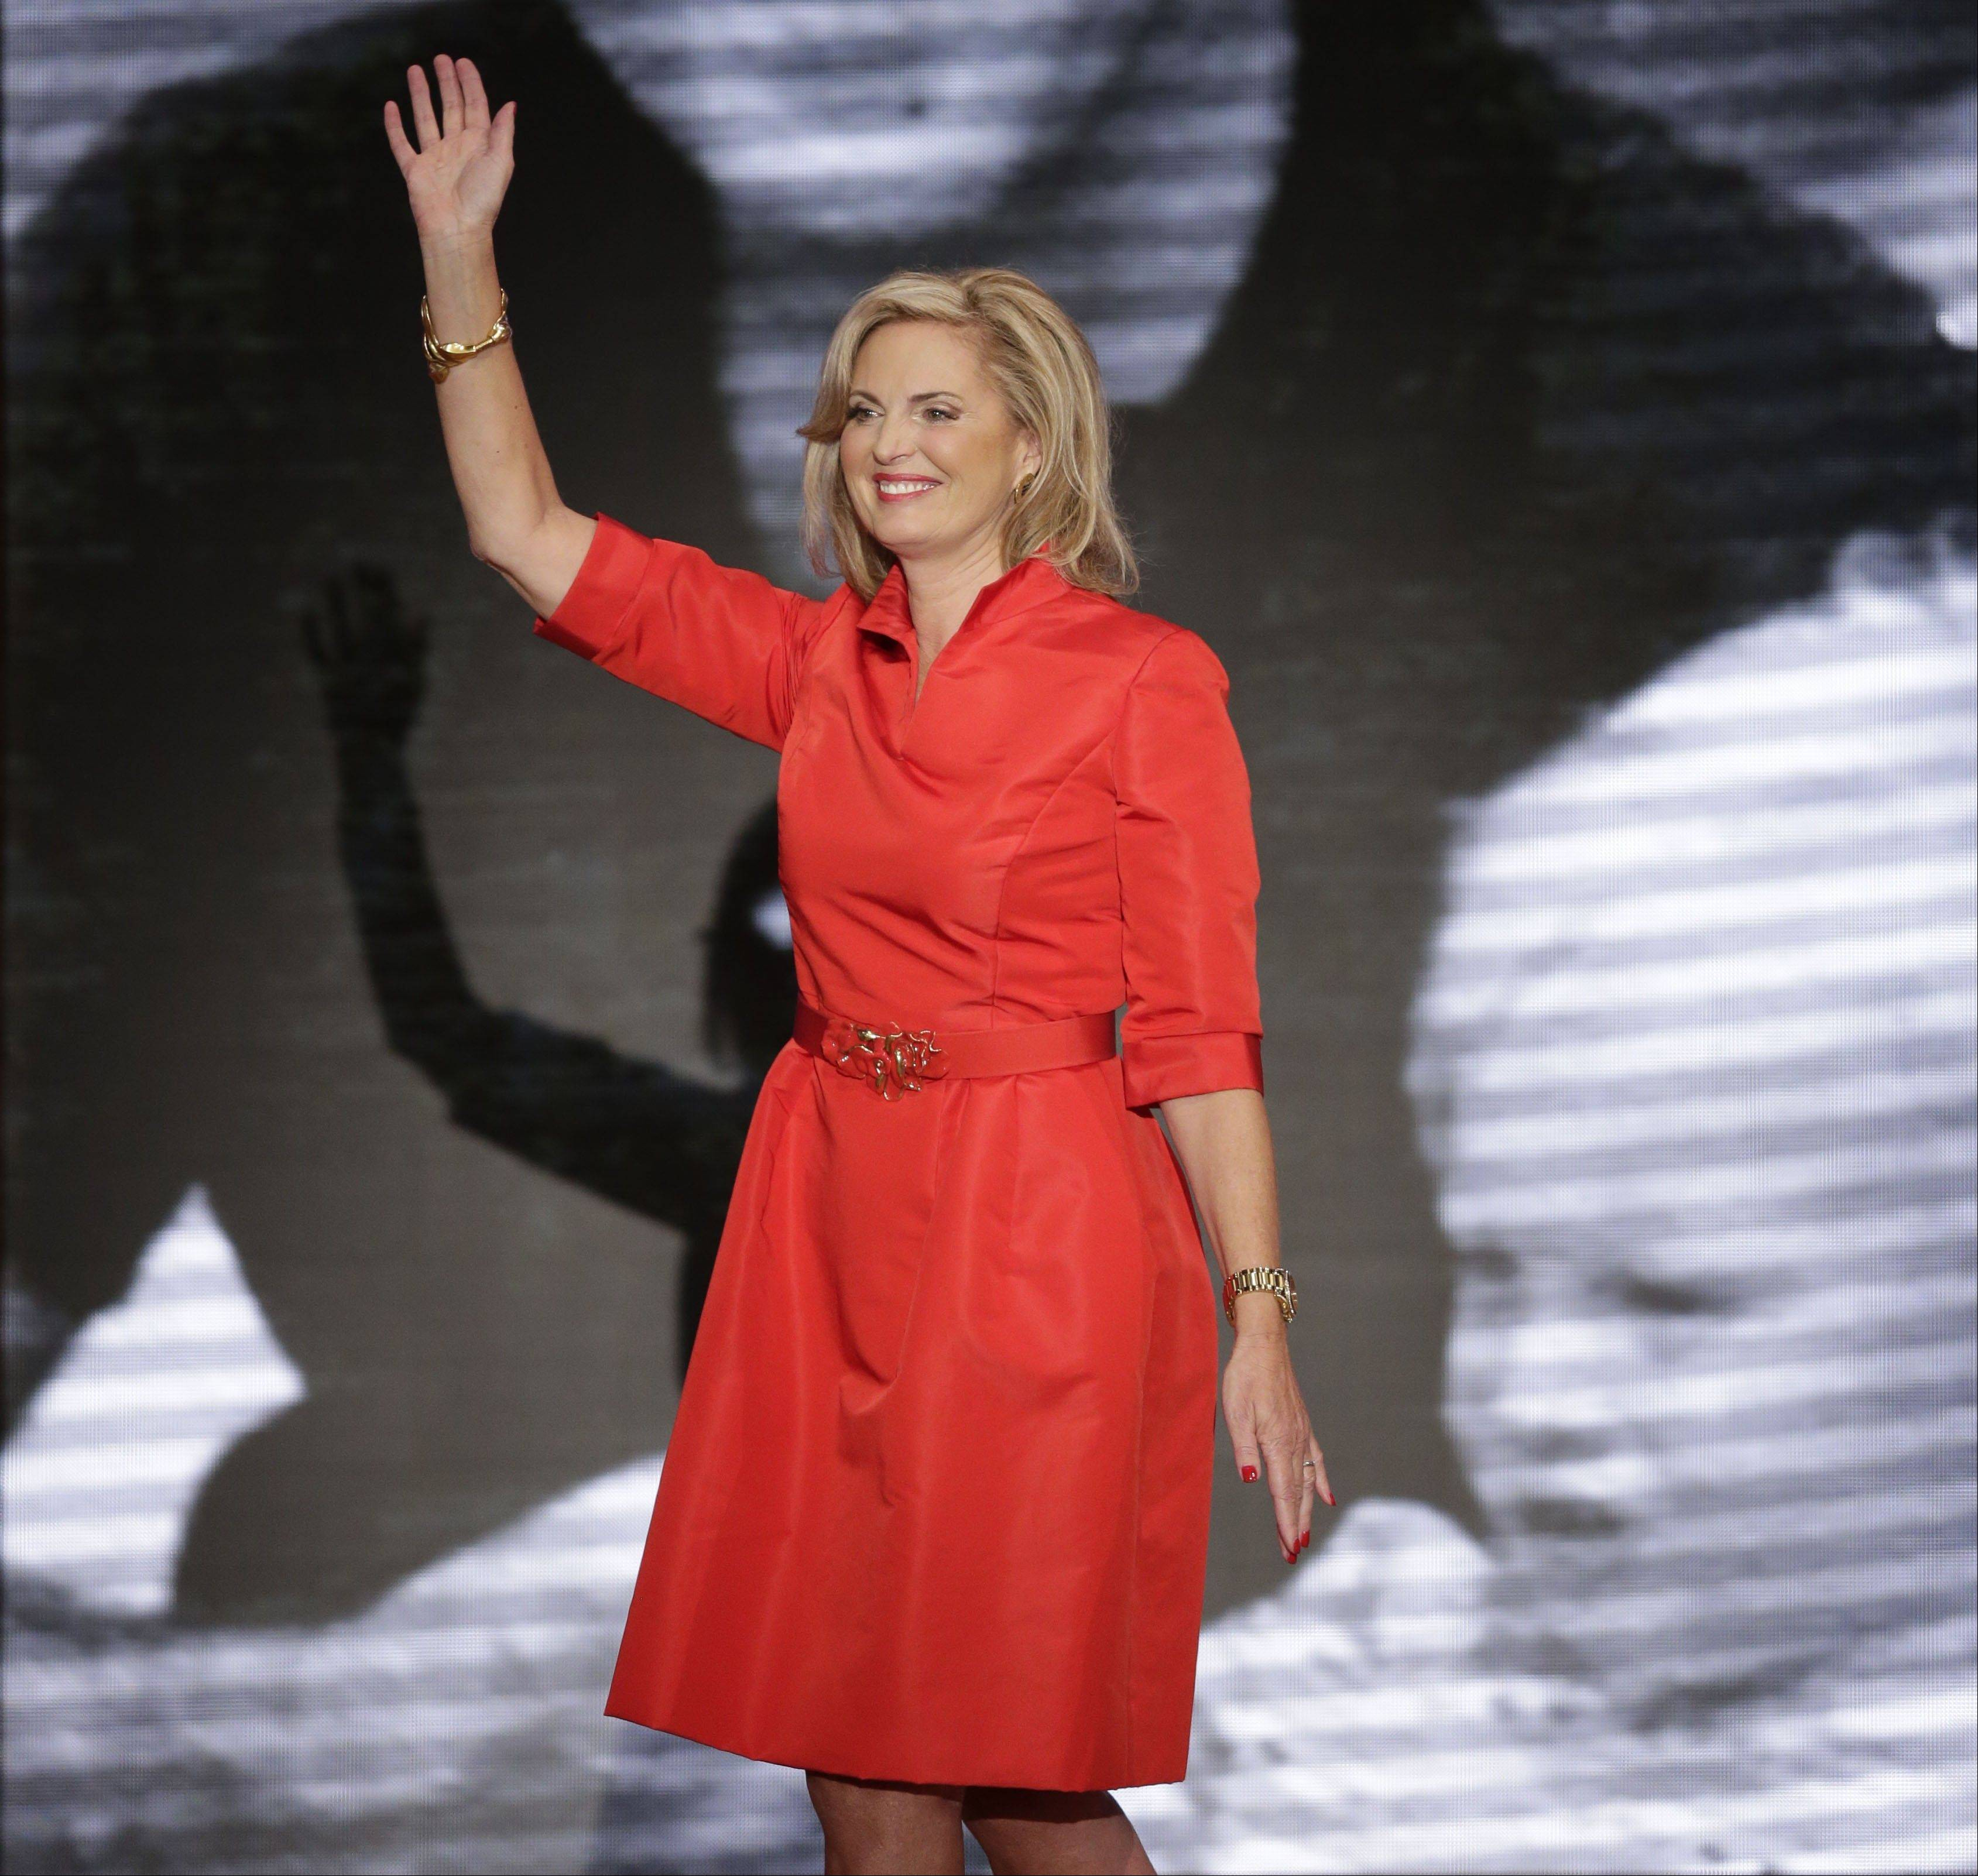 Ann Romney, wife of U.S. Republican presidential candidate Mitt Romney, wore a knee-length bright red belted dress designed by Oscar de la Renta during the Republican convention.